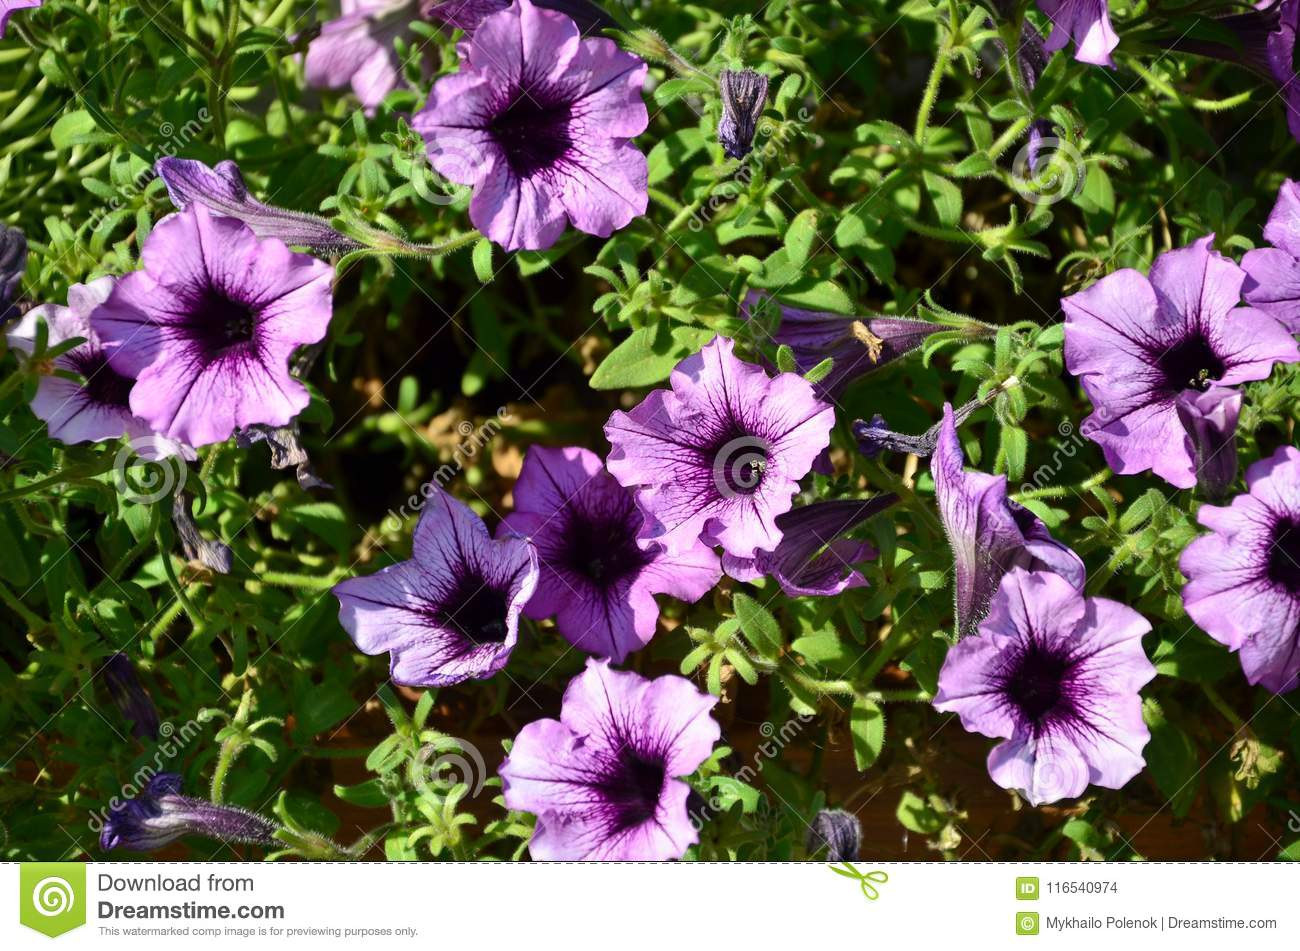 Petunia - leaving from A to Z